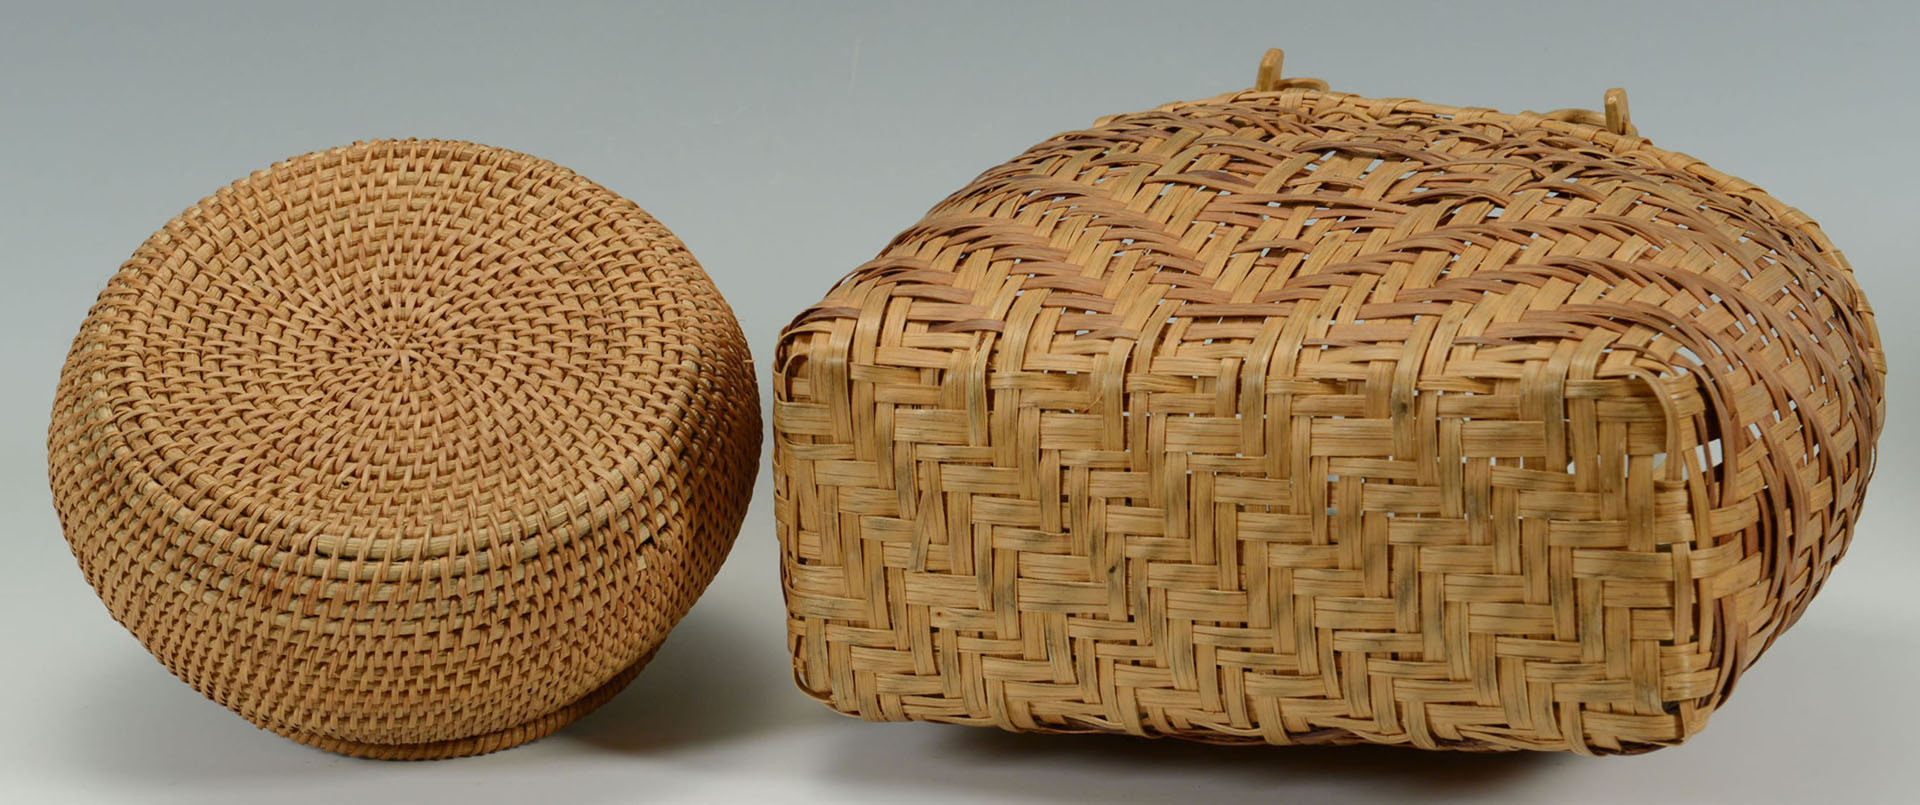 Lot 632: Grouping of Native American Items, 6 total.